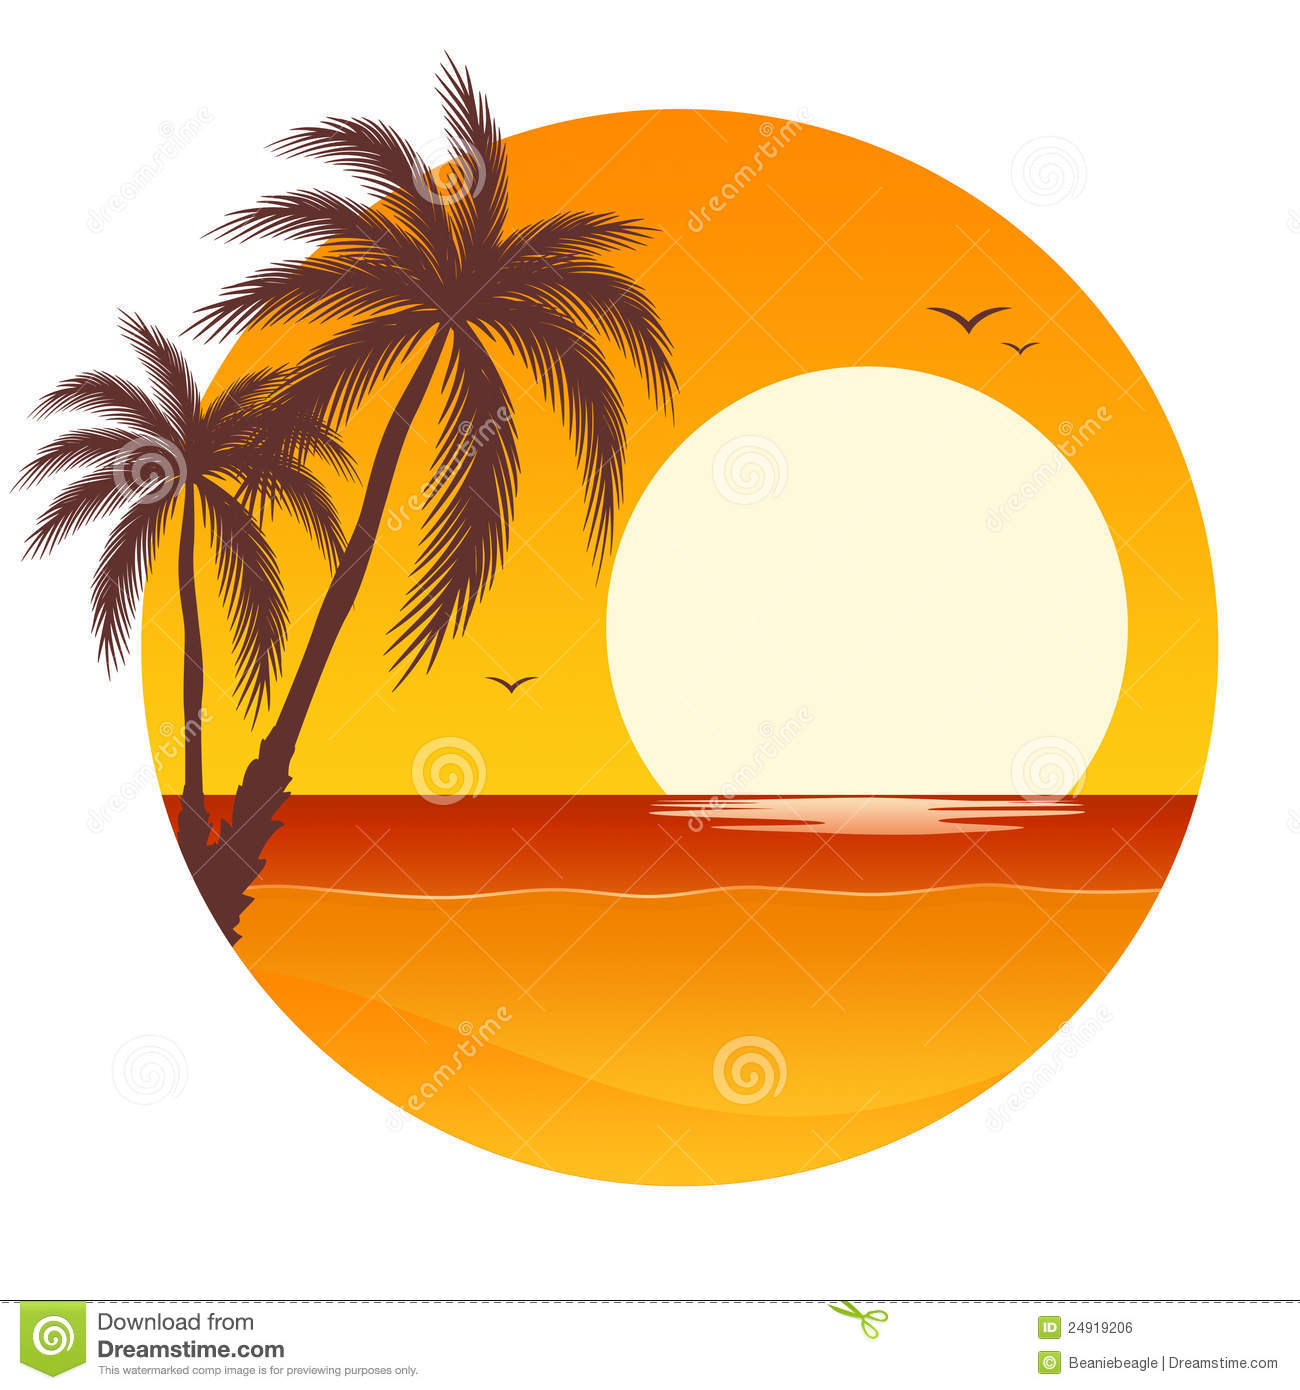 Palm tree sunset clipart 400 pxl by 150 pxl png freeuse download Palm tree and sunset clipart - ClipartFest png freeuse download